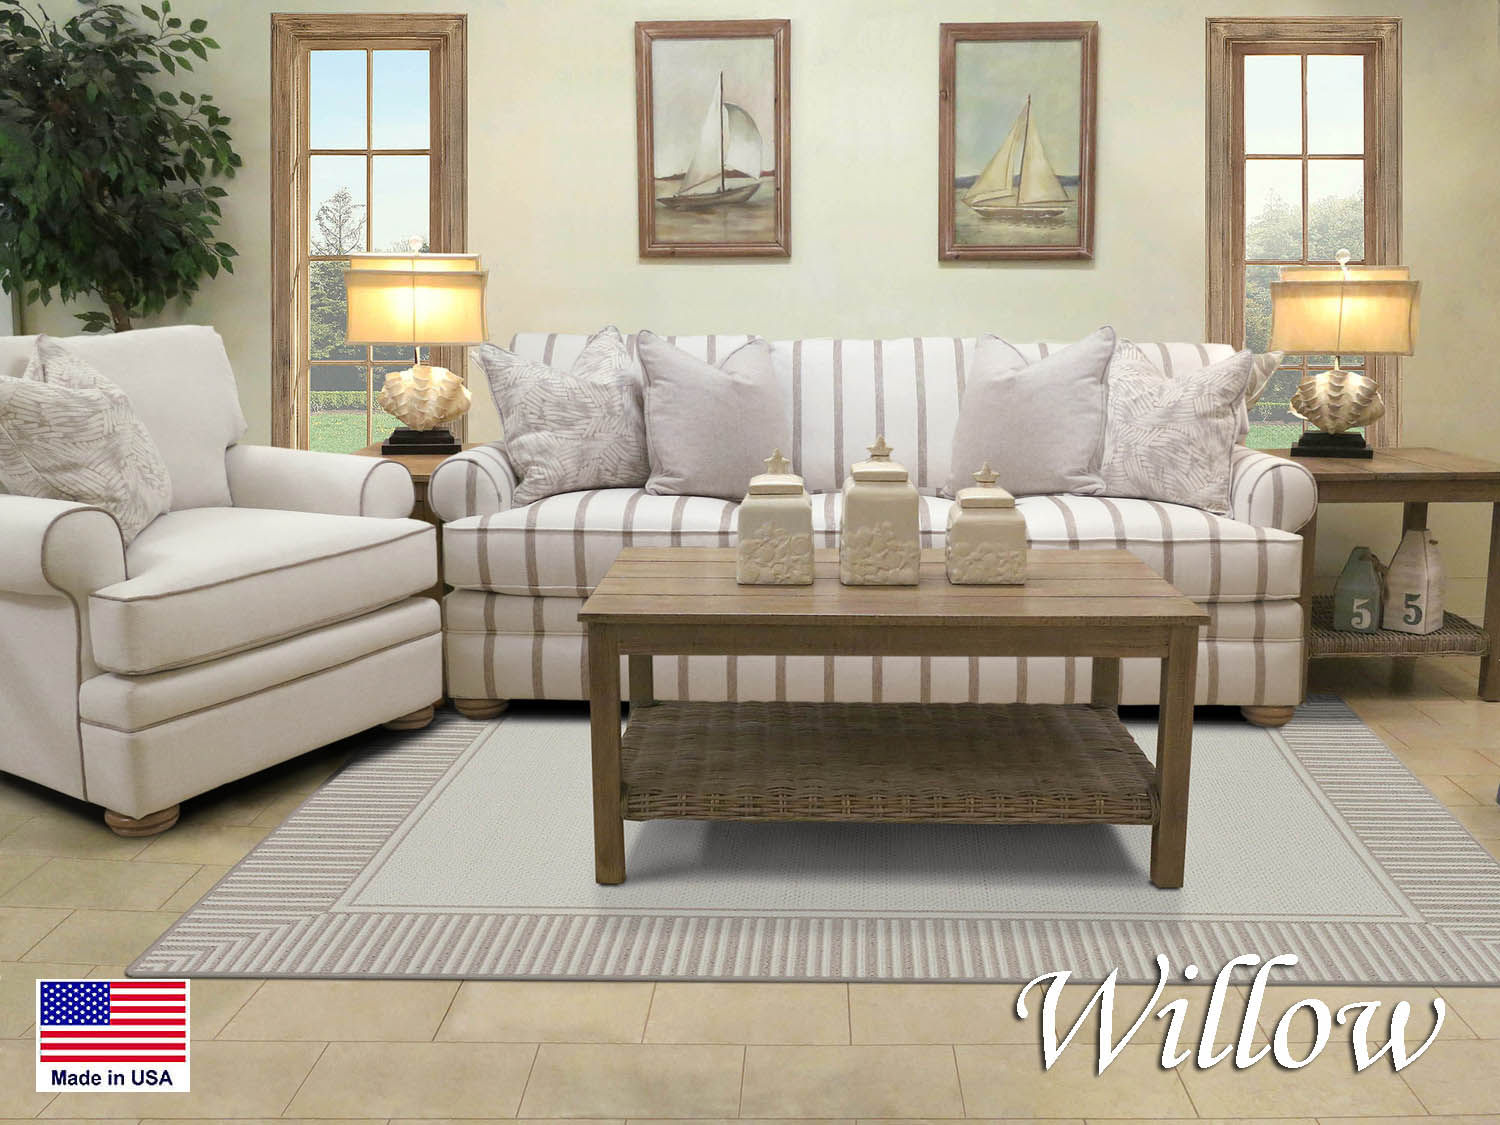 Design your own, Sofa, Chair, Living Room, Den, Family Room, Performance Fabric, Coastal, Seaside, Casual, Cottage, Nautical, Cape Cod, Made in USA, Barbo's Furniture